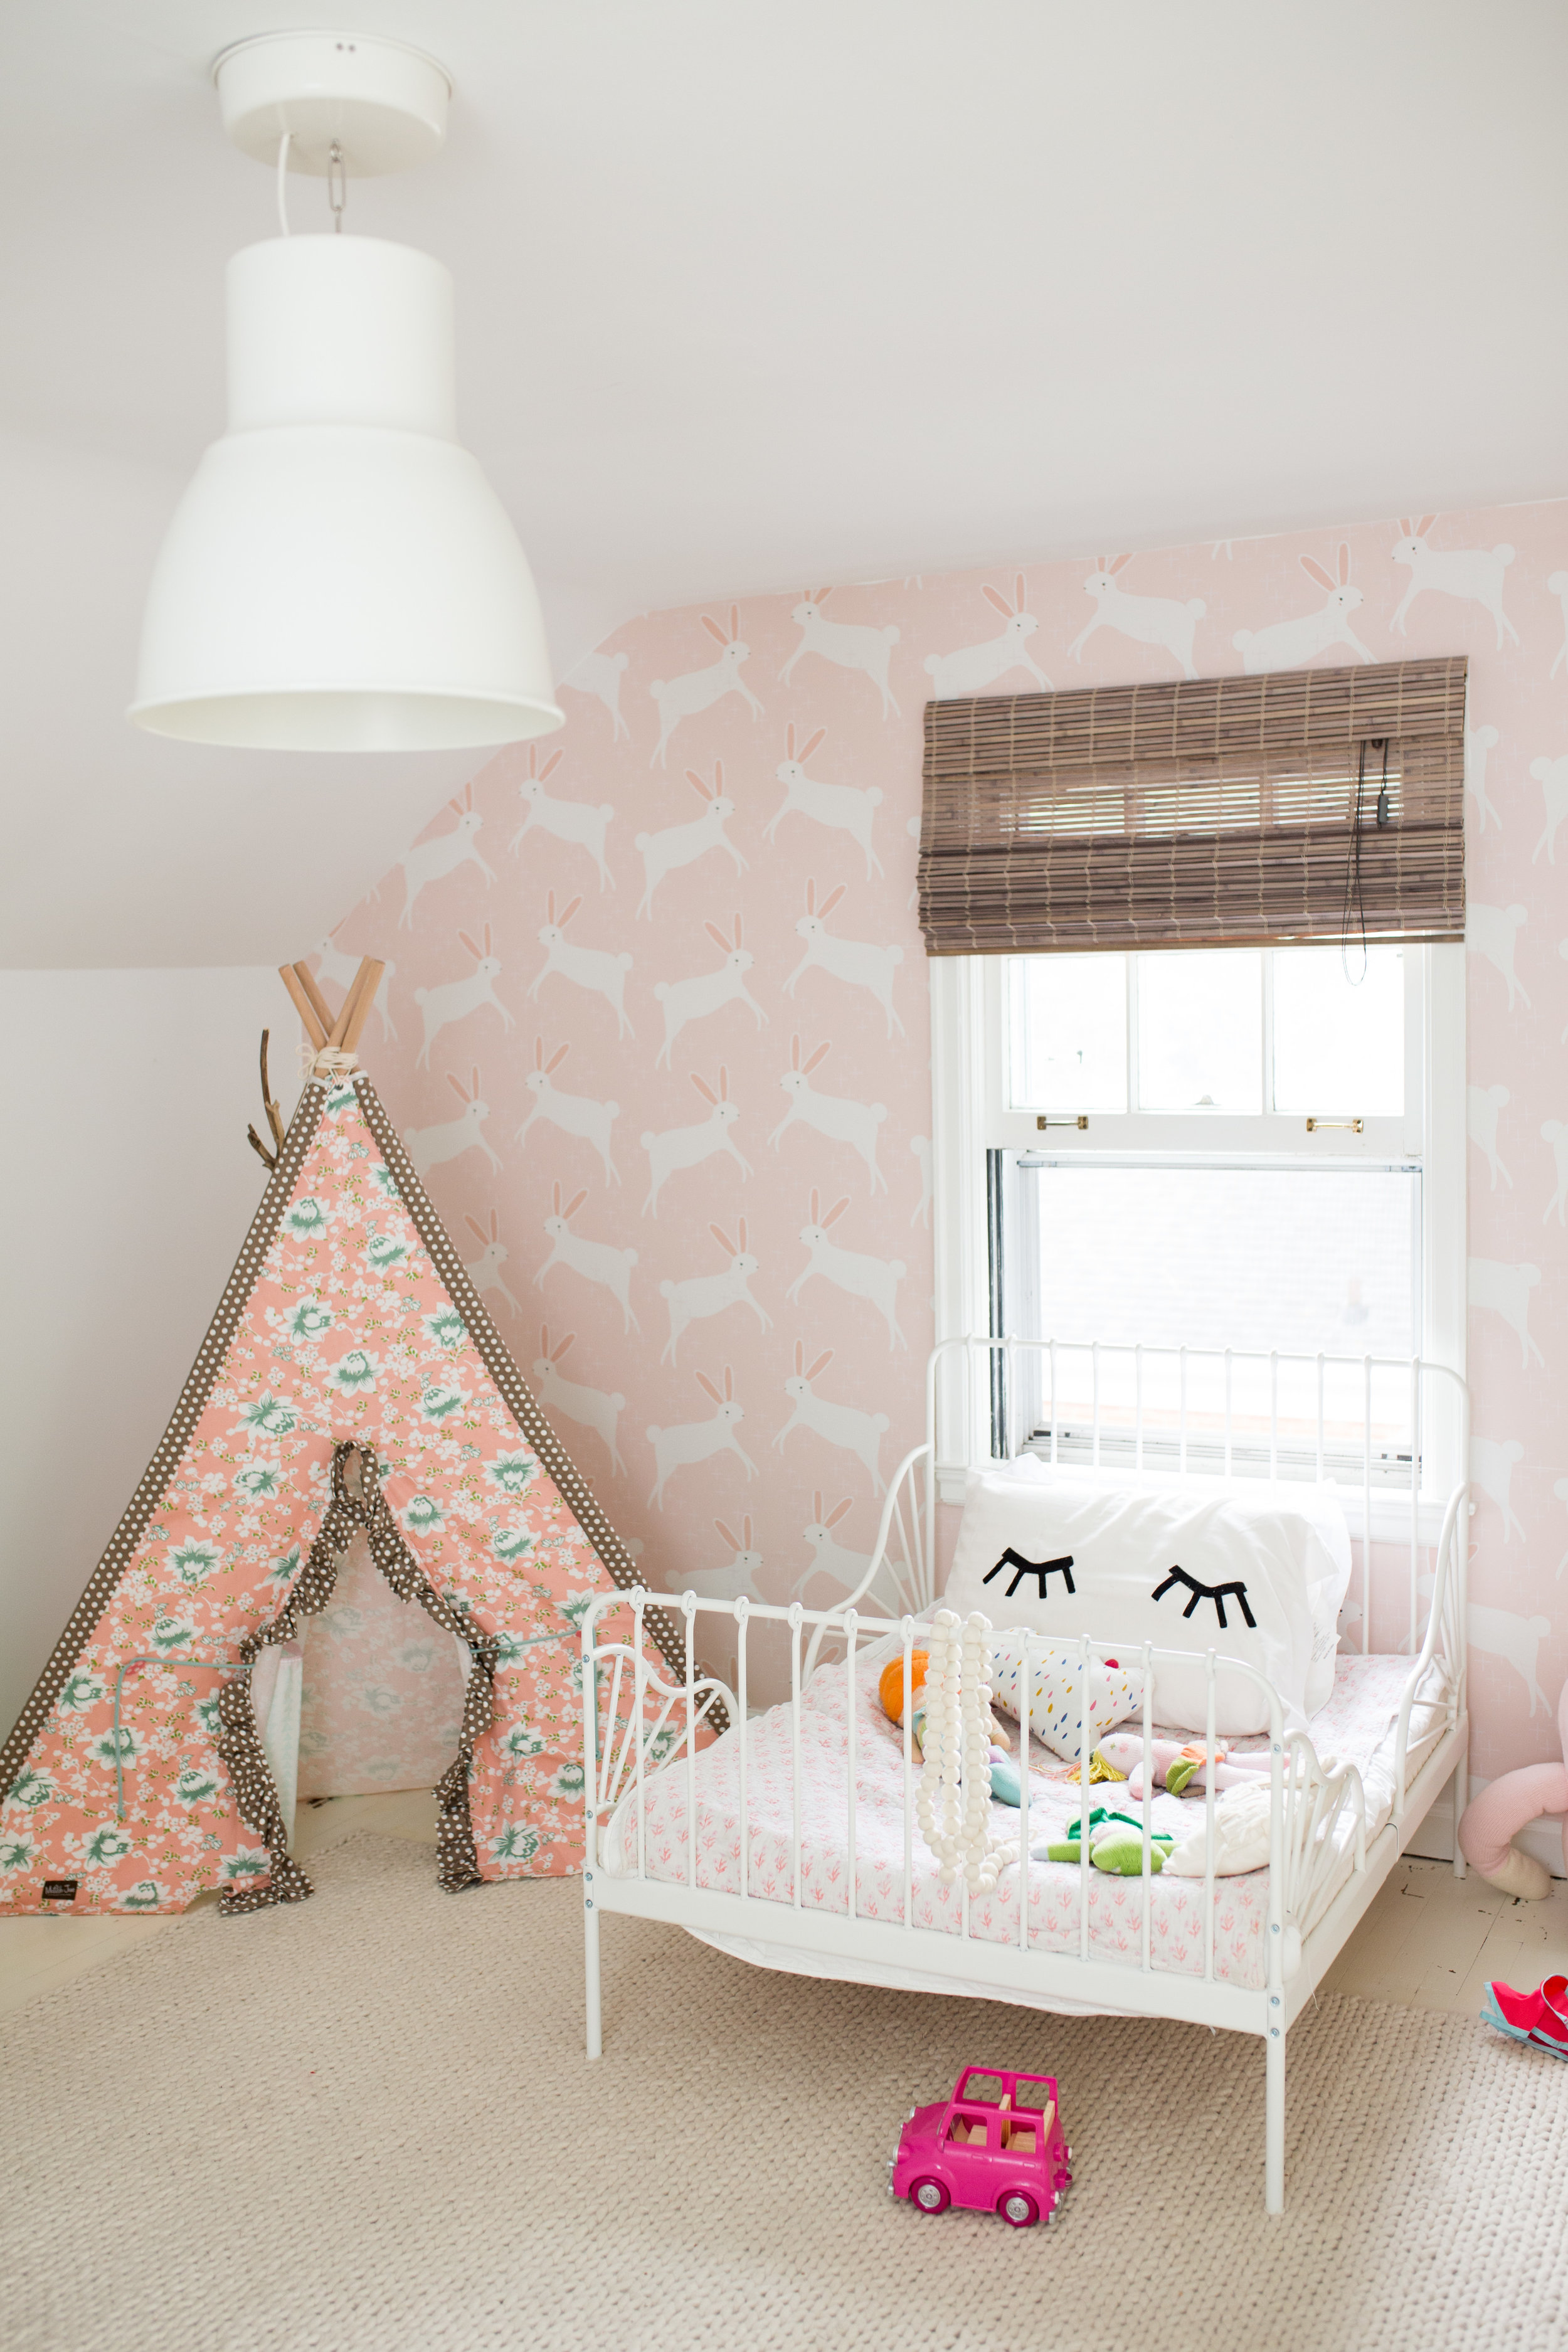 LisaDiederichPhotography_HouseSevenDesign_ApartmentTherapy_Blog-18.jpg